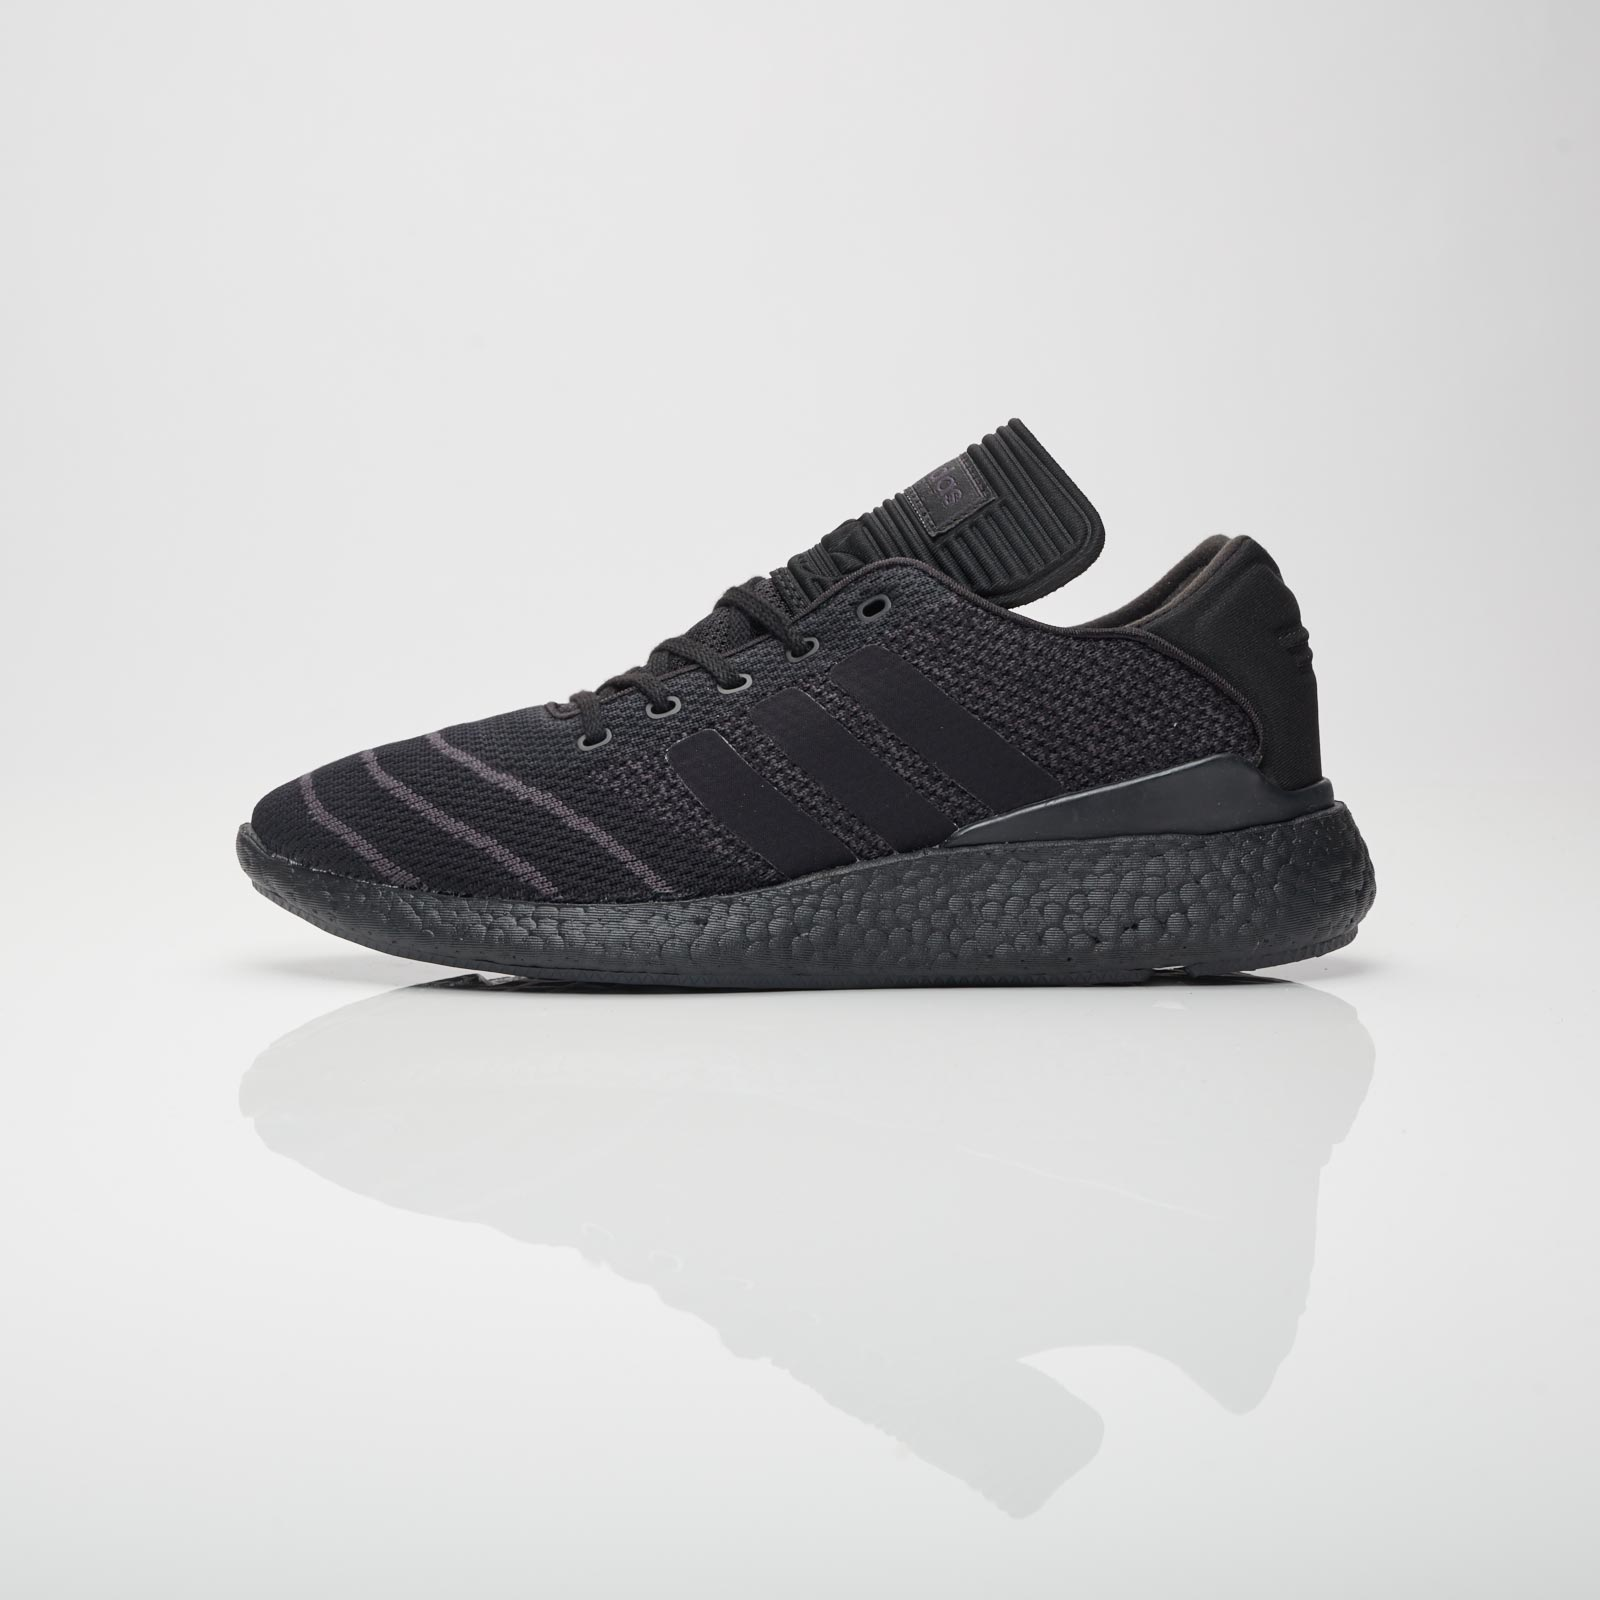 a28499748 adidas Busenitz Pure Boost PK - By4091 - Sneakersnstuff